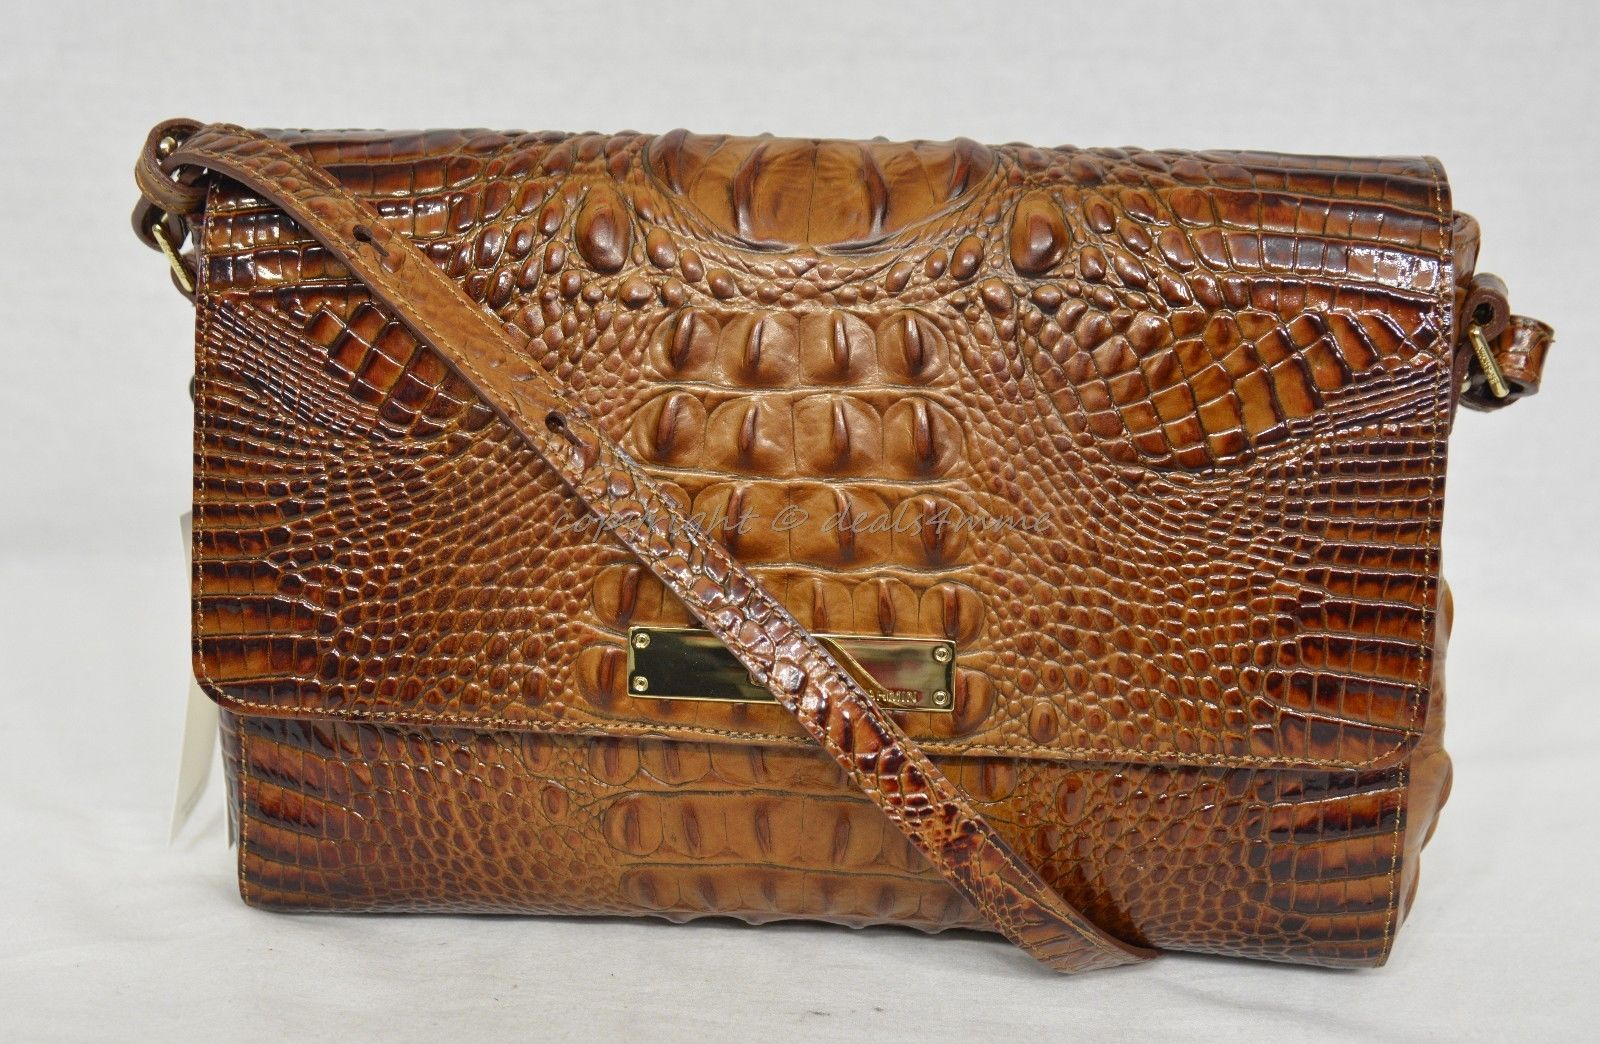 Primary image for NWT! Brahmin Thea Shoulder Bag in Toasted Almond Melbourne Croc-Embossed Leather